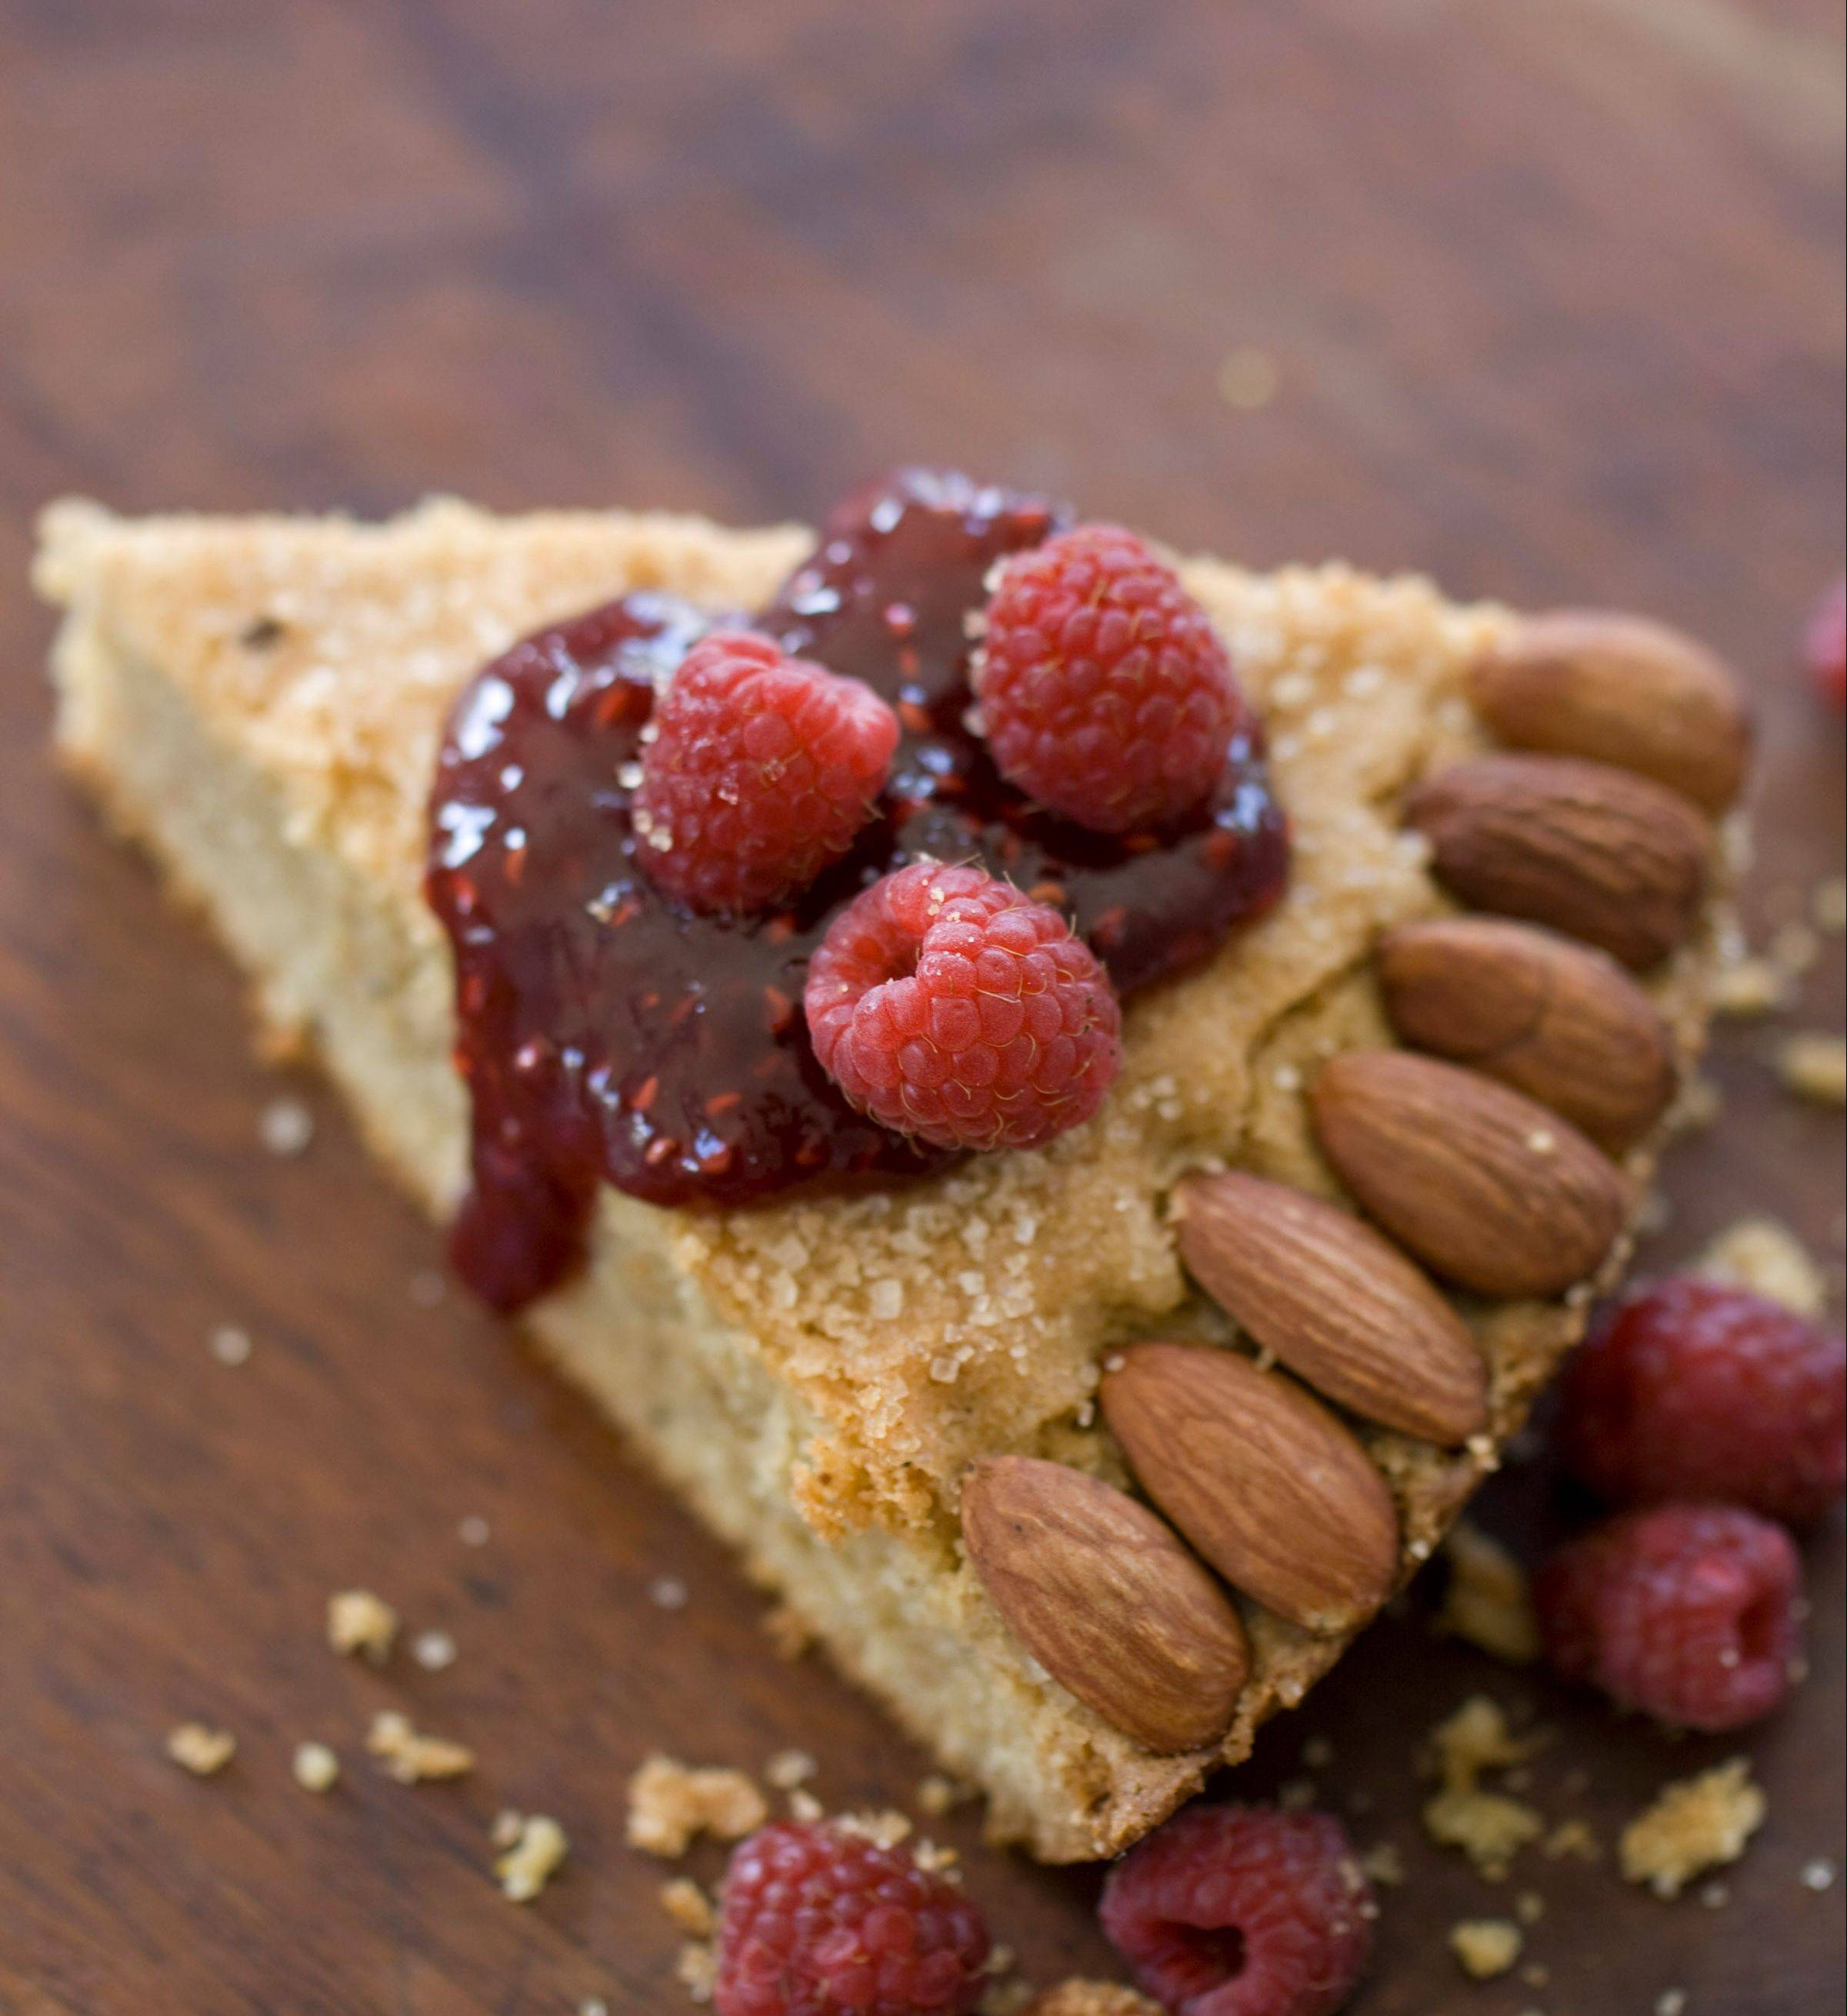 Citrus Spice Almond Butter Torte packs in the flavors of fall.